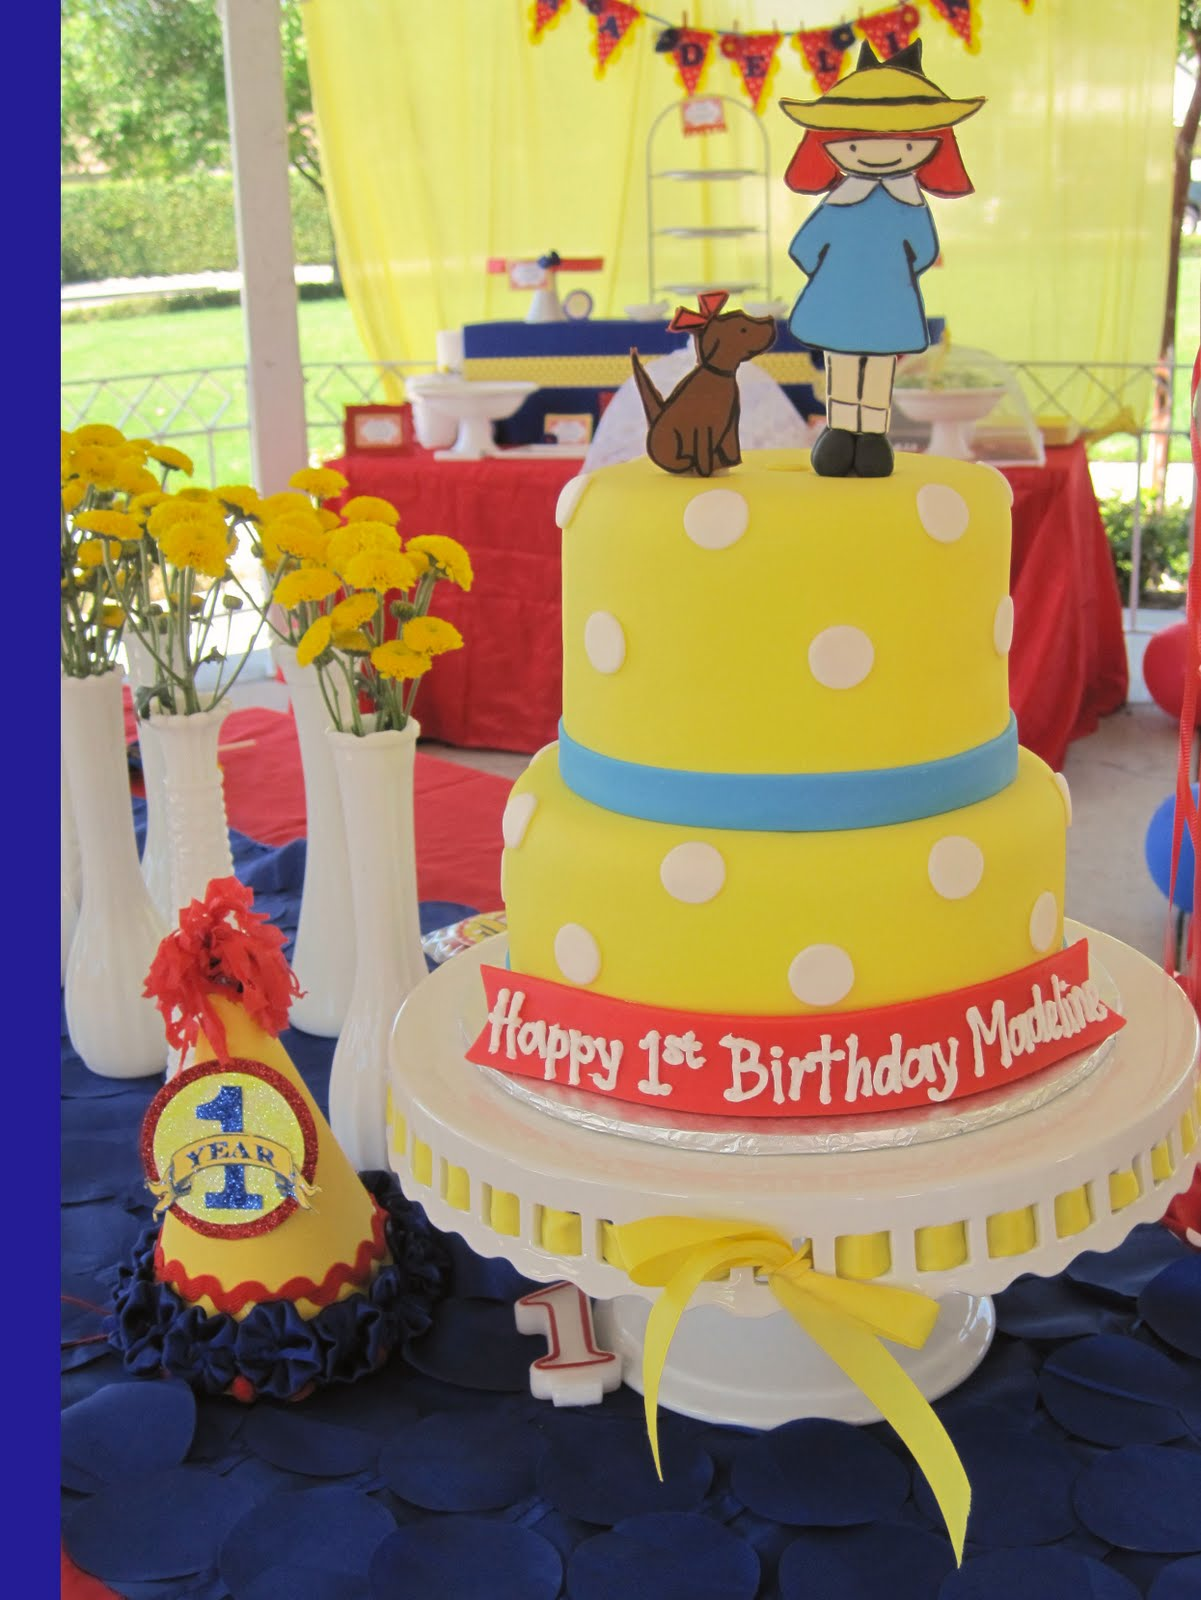 A Madeline 1st Birthday For Madamoiselle Madeline | LUX EVENTS AND ...